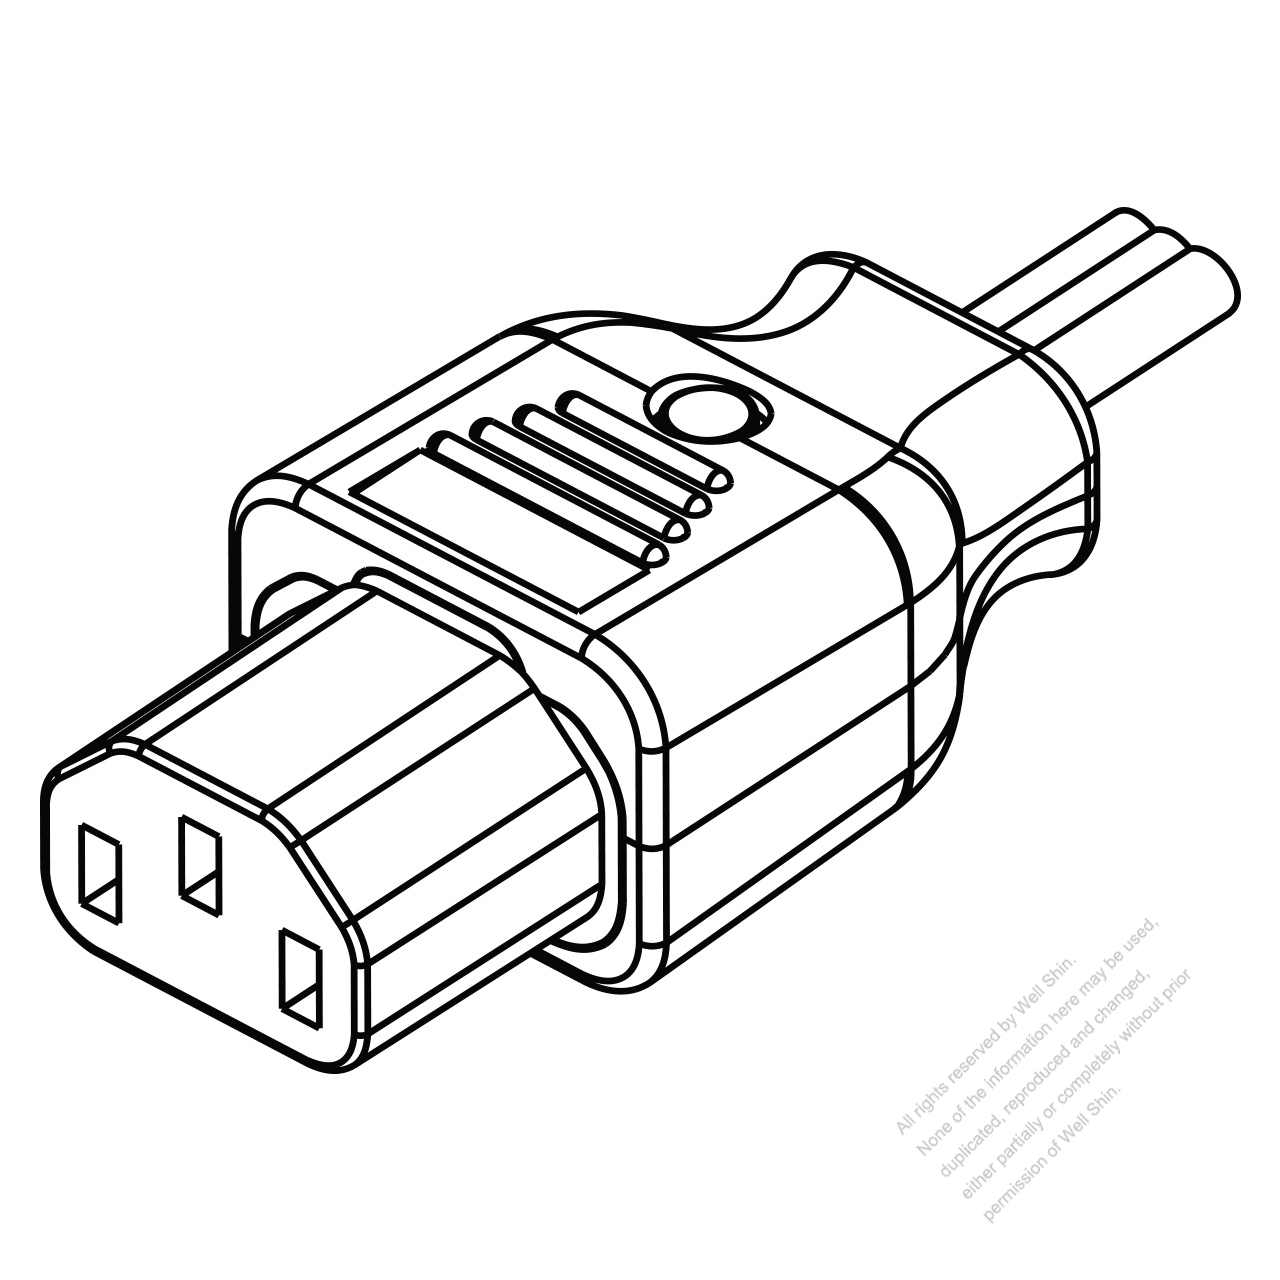 IEC 320 C13 Connectors 3-Pin Straight 10A 125/250V - Well ... Iec Wiring Diagram on